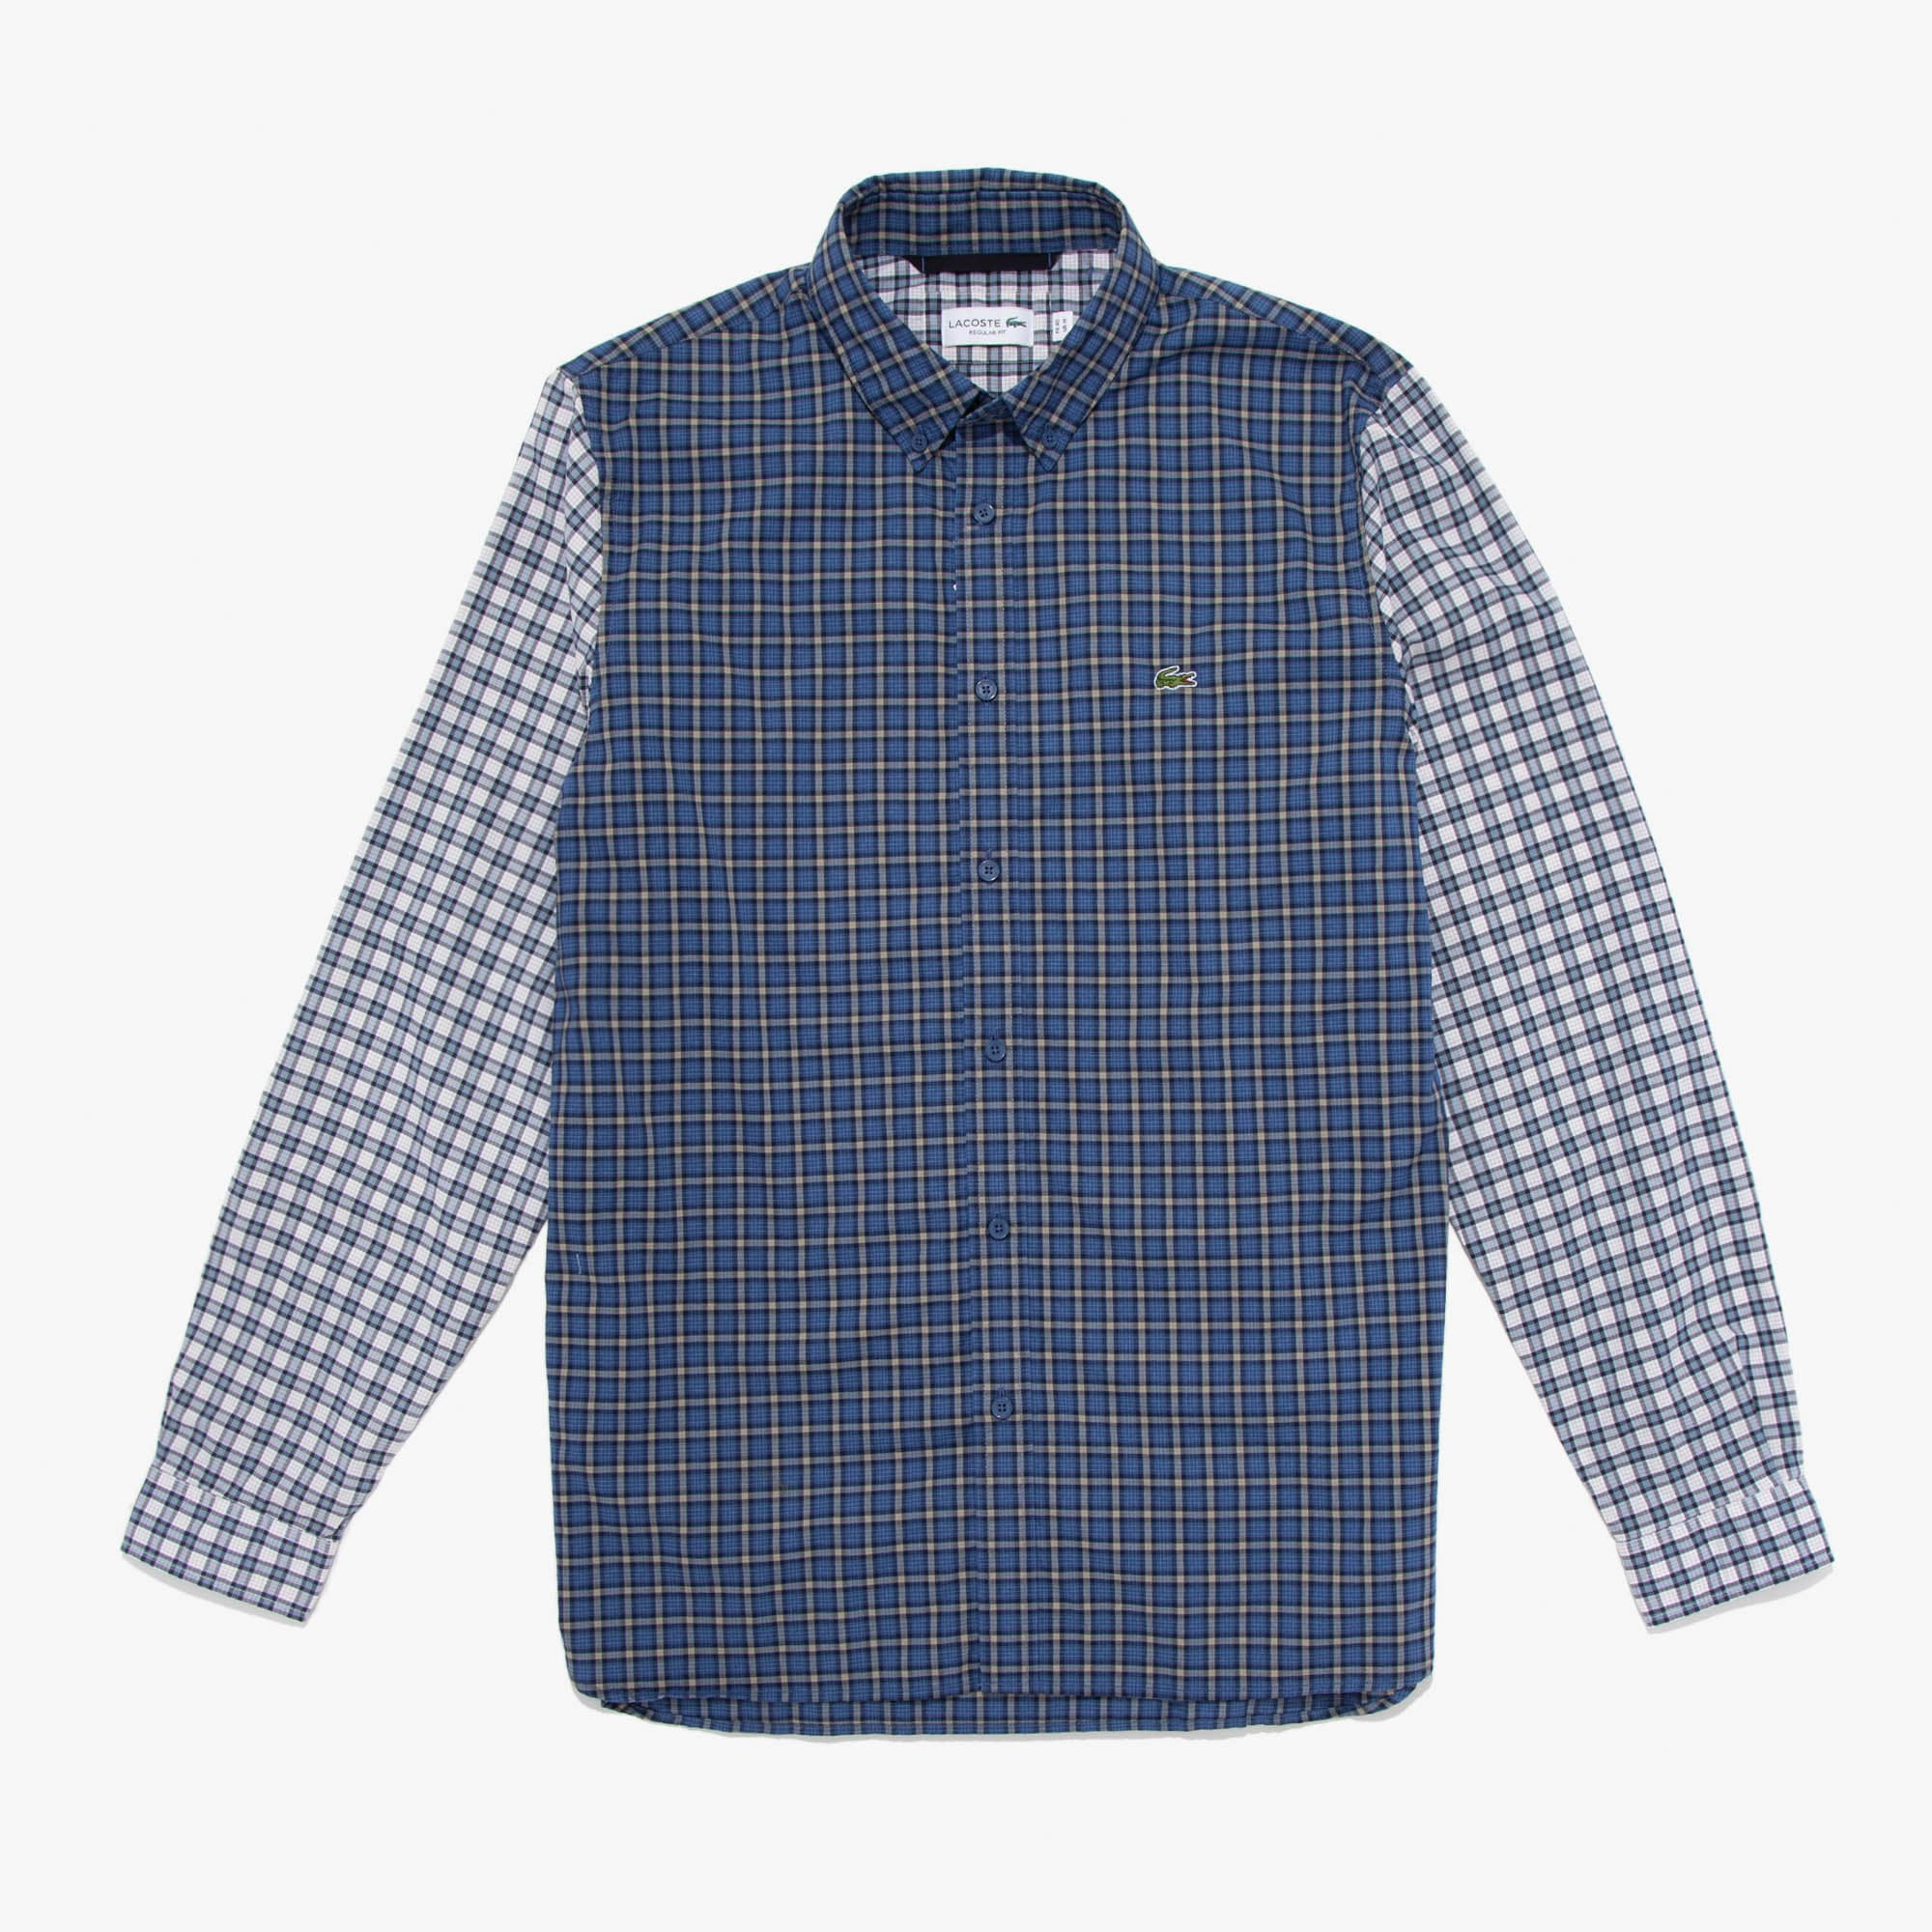 Lacoste Tops Men's Mixed-Plaid Button Down Shirt